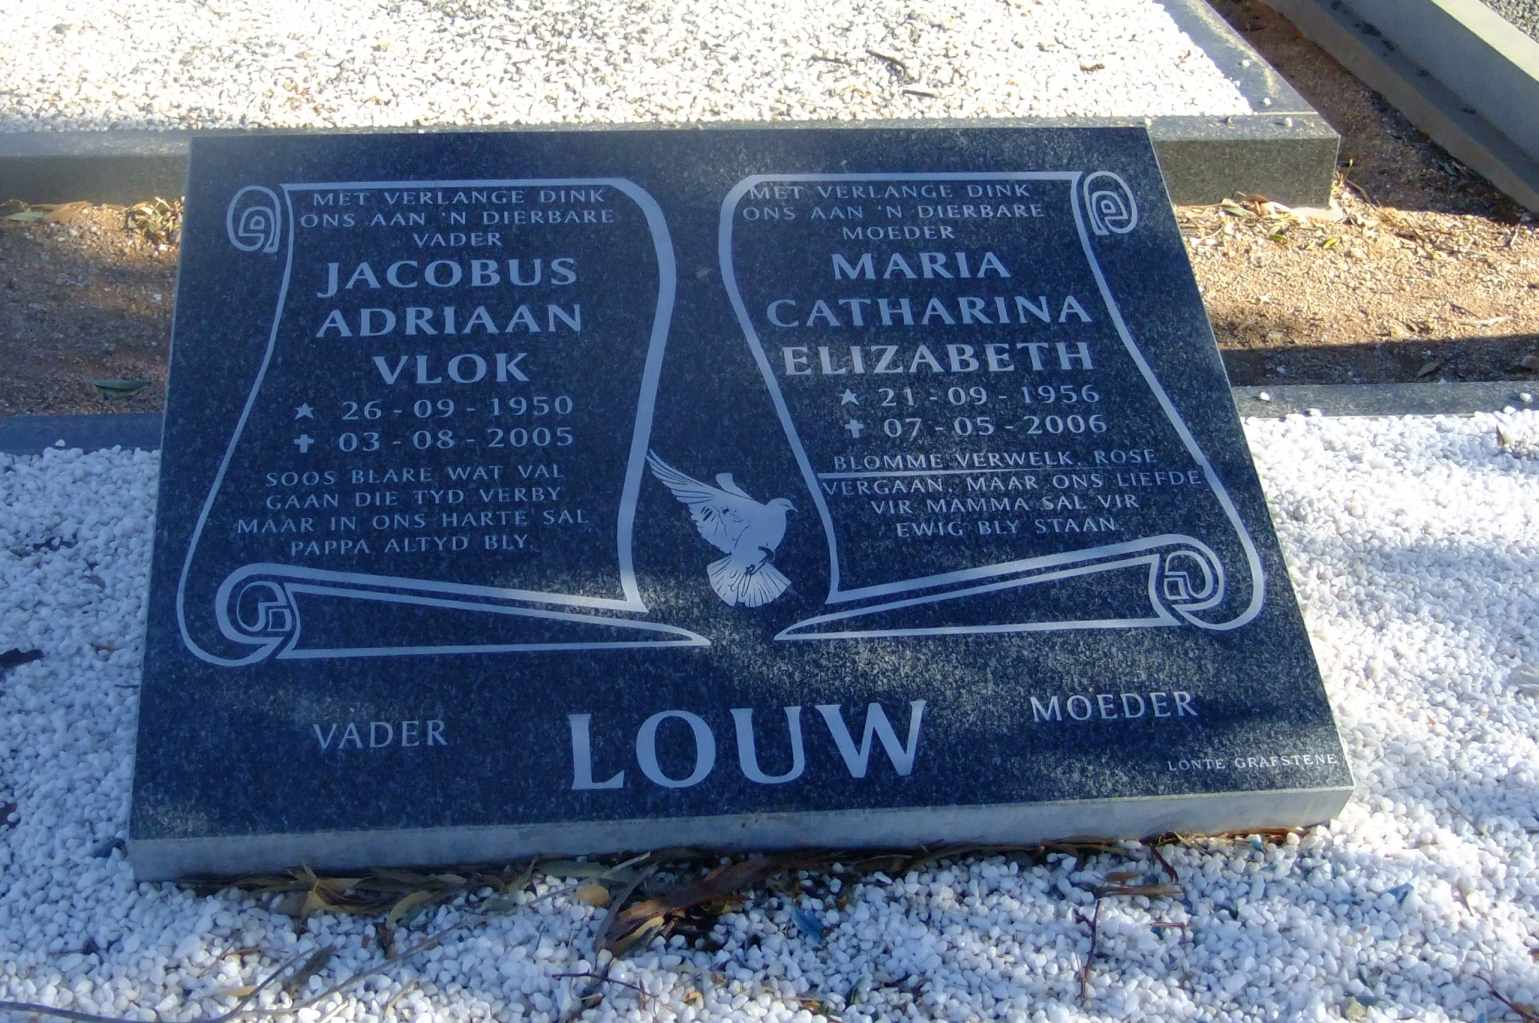 Louw, Jacobus Adriaan Vlok born 26 September 1950 died 3 August 2005 and Maria Catharina Elizabeth born 21 September 1956 died 07 May 2006